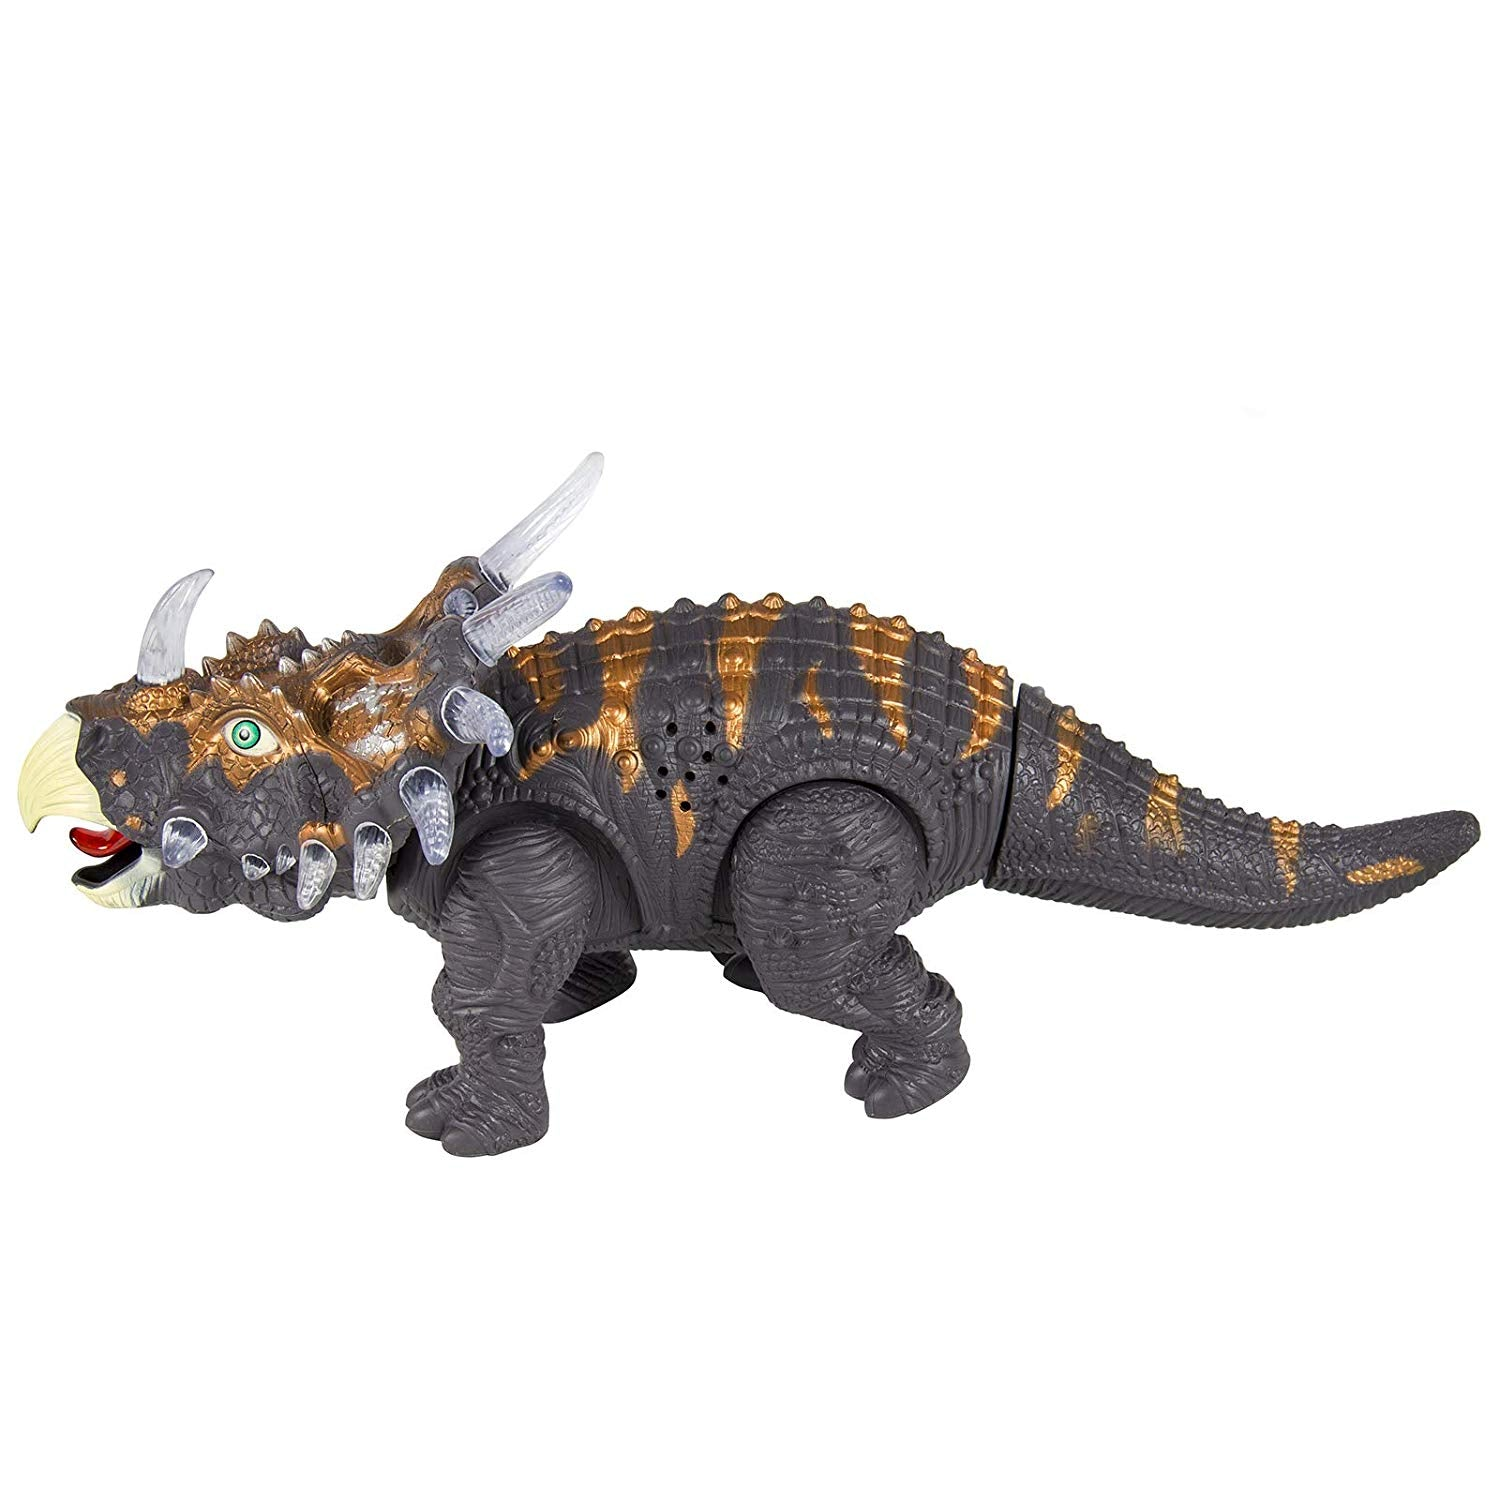 14in Kids Interactive Walking Moving Triceratops Dinosaur Animal RC Toy Figure w/ Lights, Sound